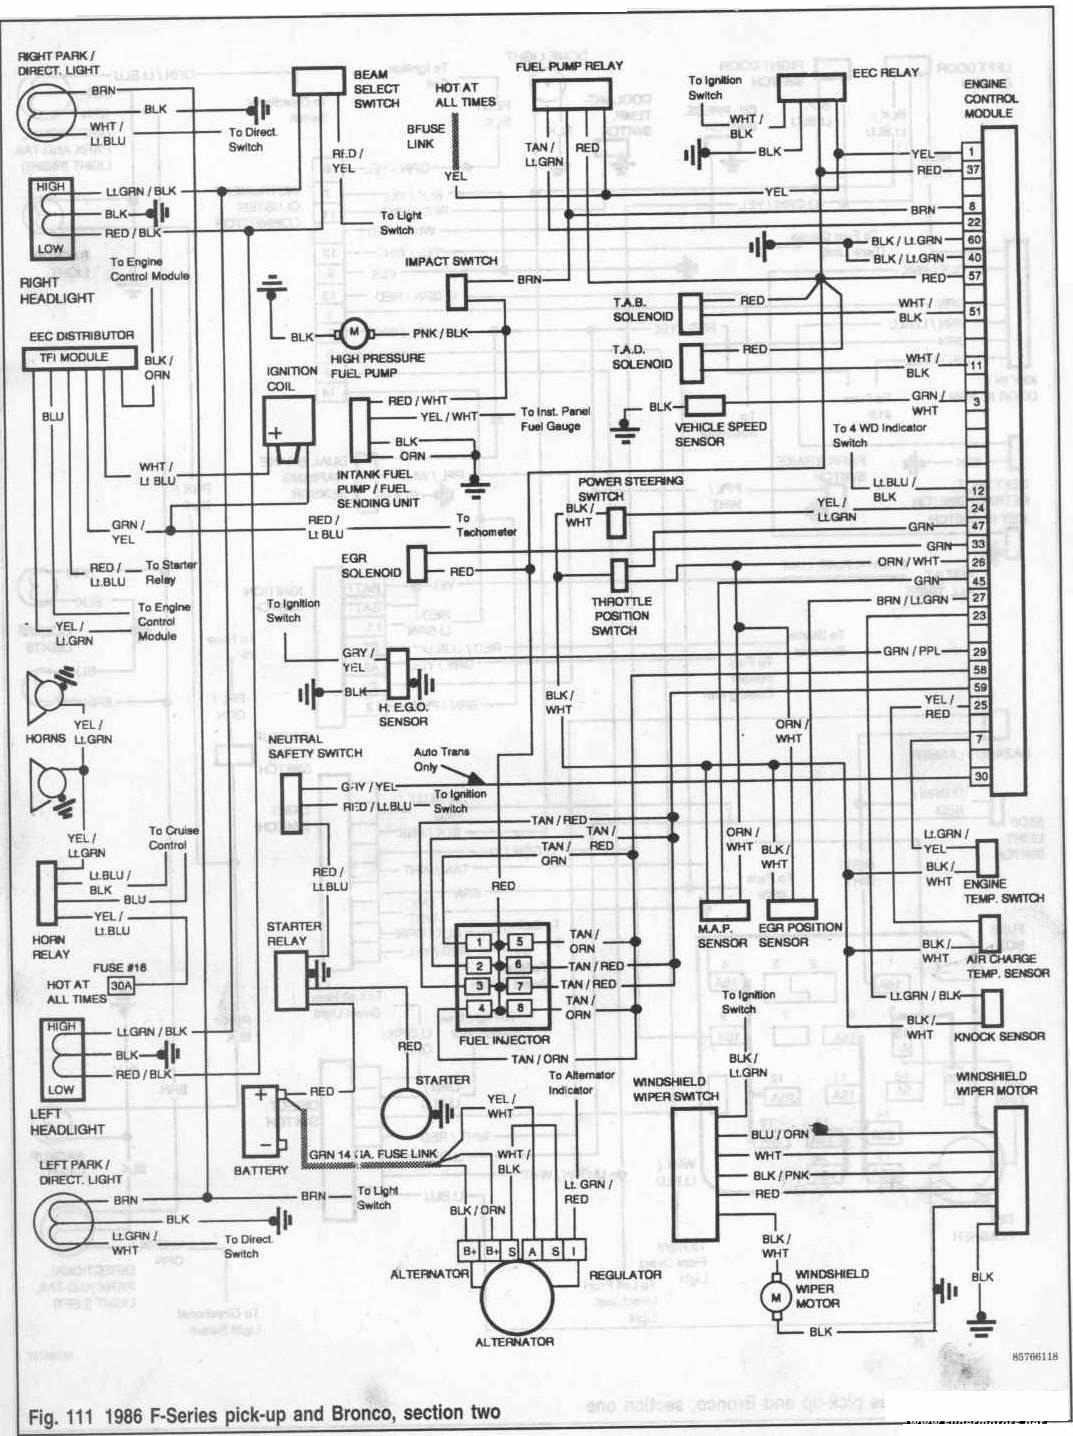 1994 F150 Engine Circuit Wiring Diagram Free Vehicle Diagrams U Generalinfo Co Ford